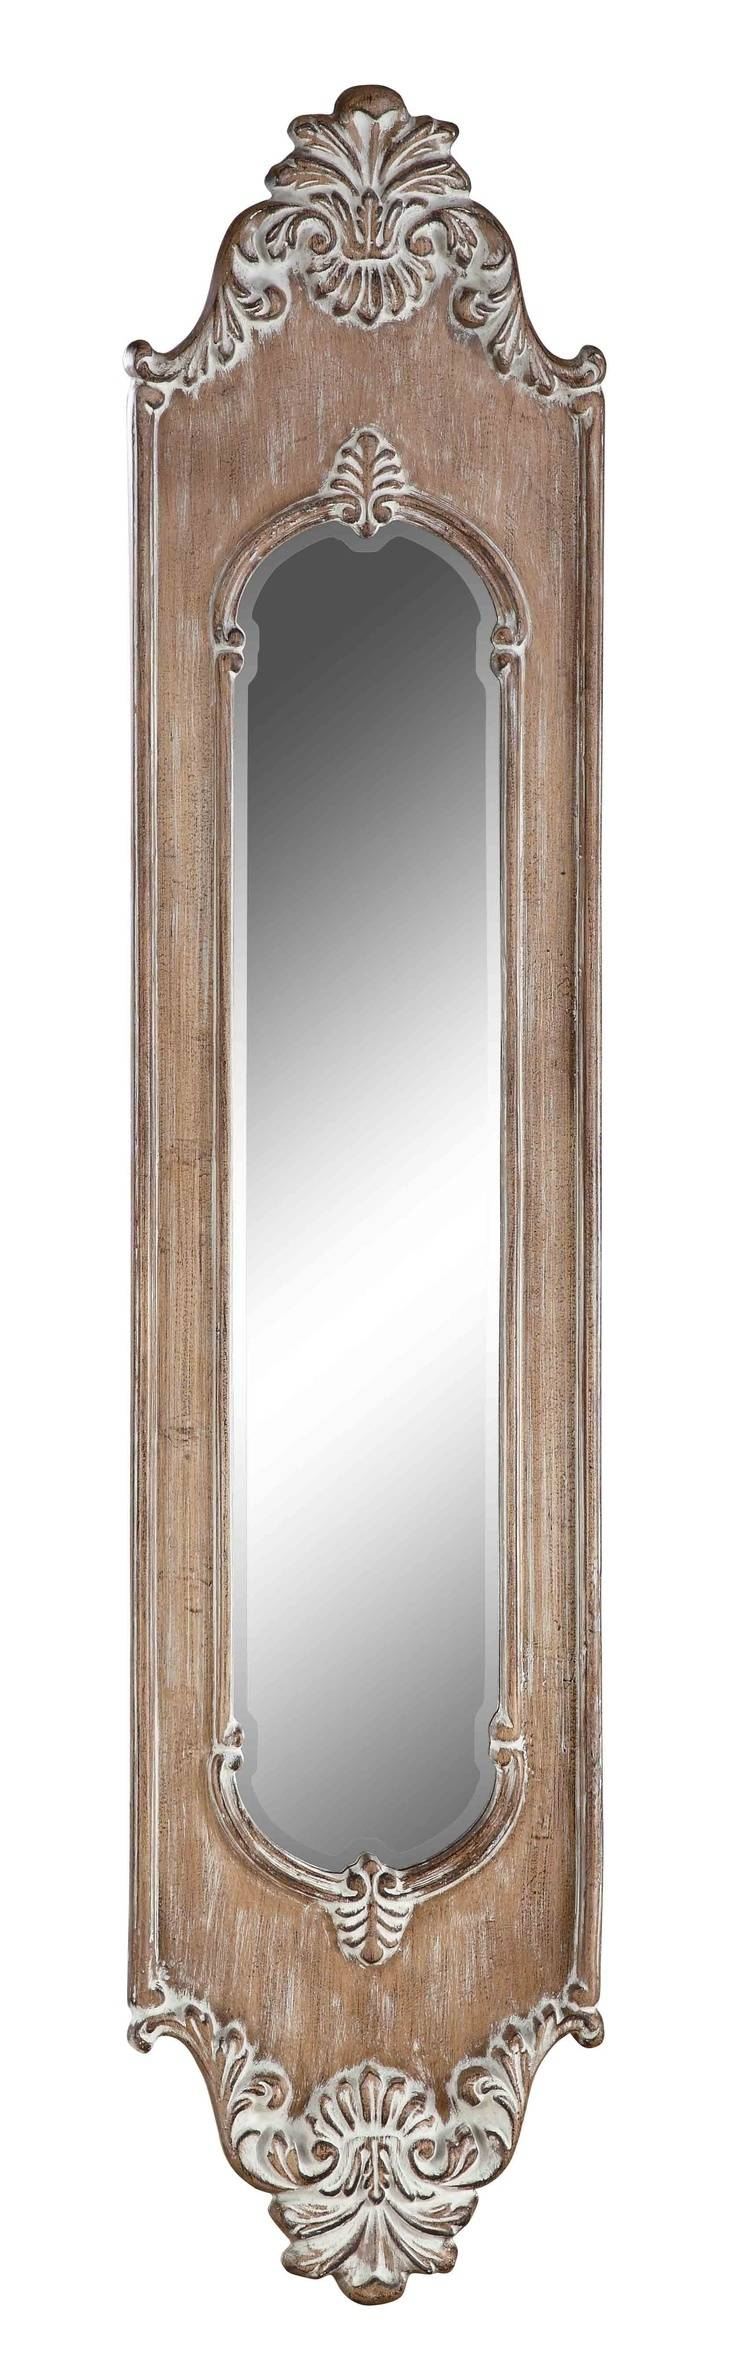 49 Best Mirrors Images On Pinterest | Living Room Mirrors, Memphis for Long Narrow Mirrors (Image 1 of 25)